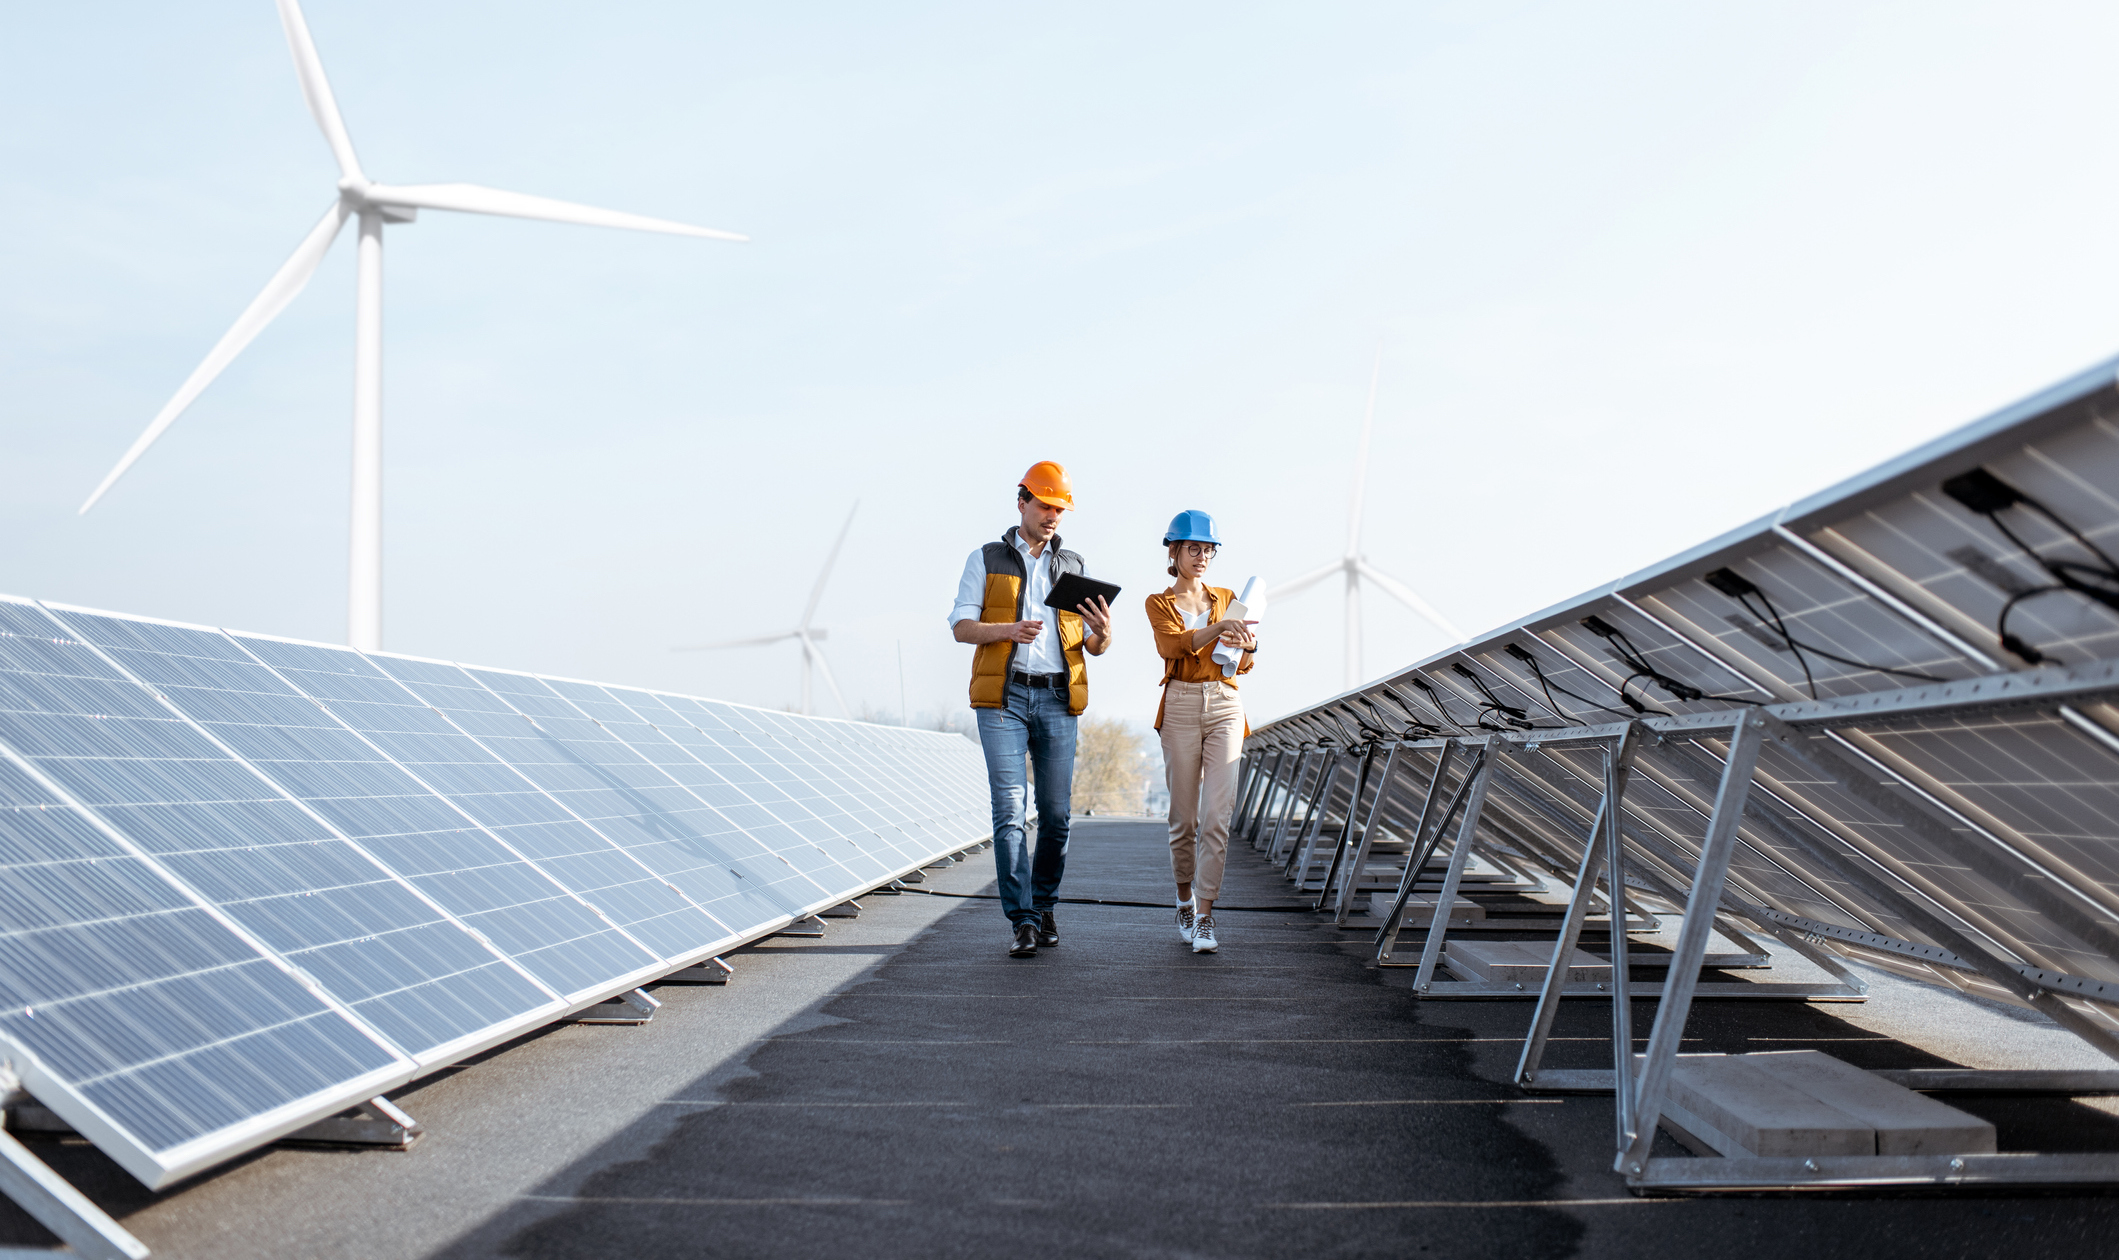 Investing in clean energy will help economic recovery